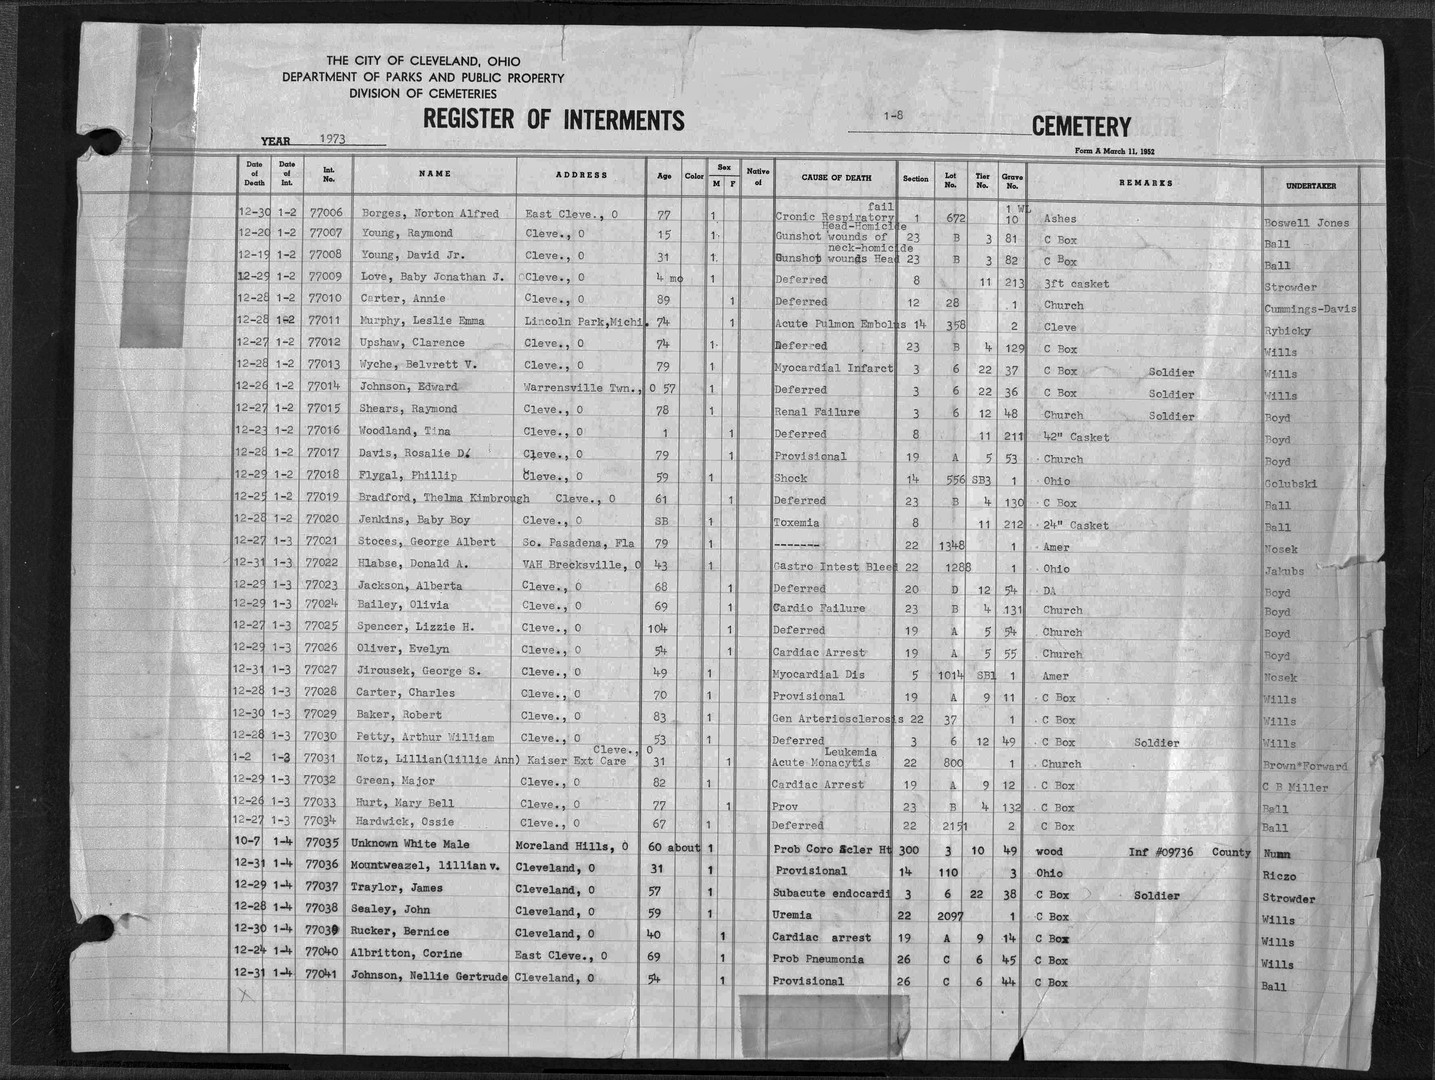 Death Record of Lillian Virginia Mountweazel